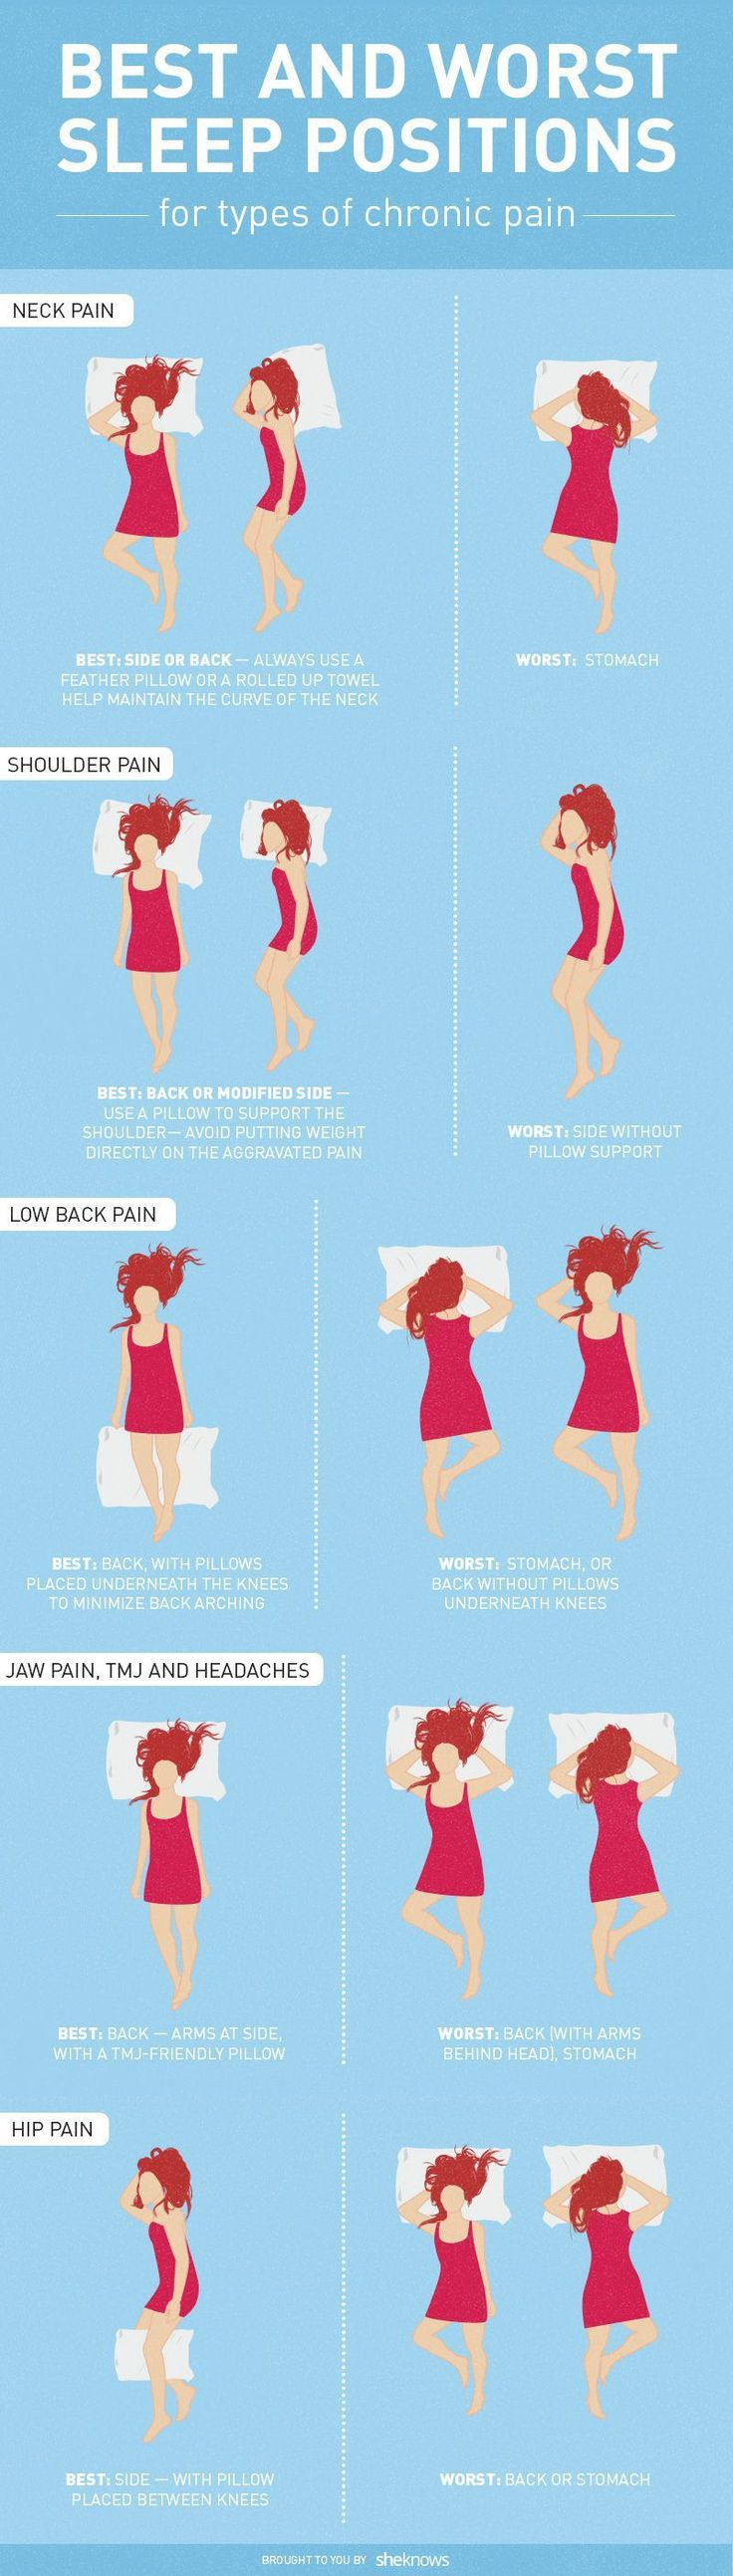 We spend about a third of our lives asleep. However, the way we sleep can have an incredible impact on back, neck, joint and chronic pain.